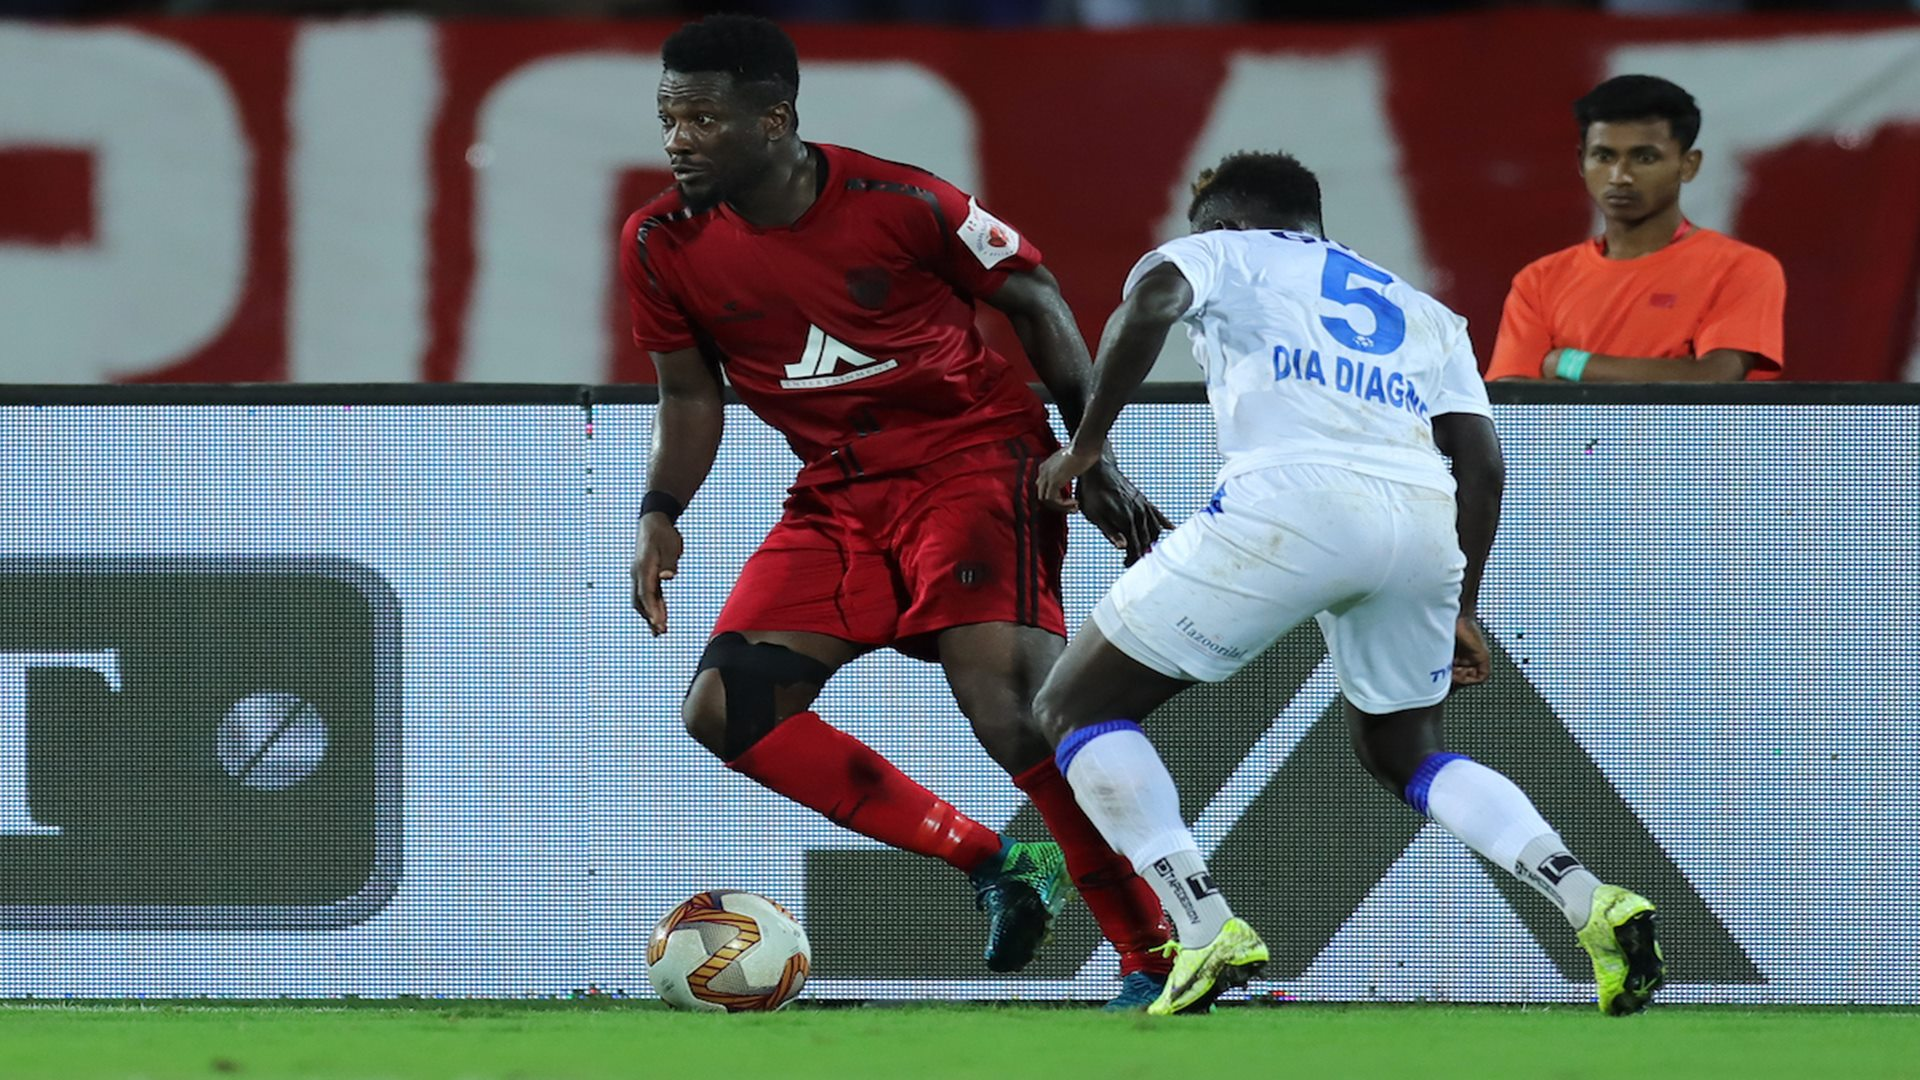 NorthEast United can deal with Asamoah Gyan's injury - Kai Heerings